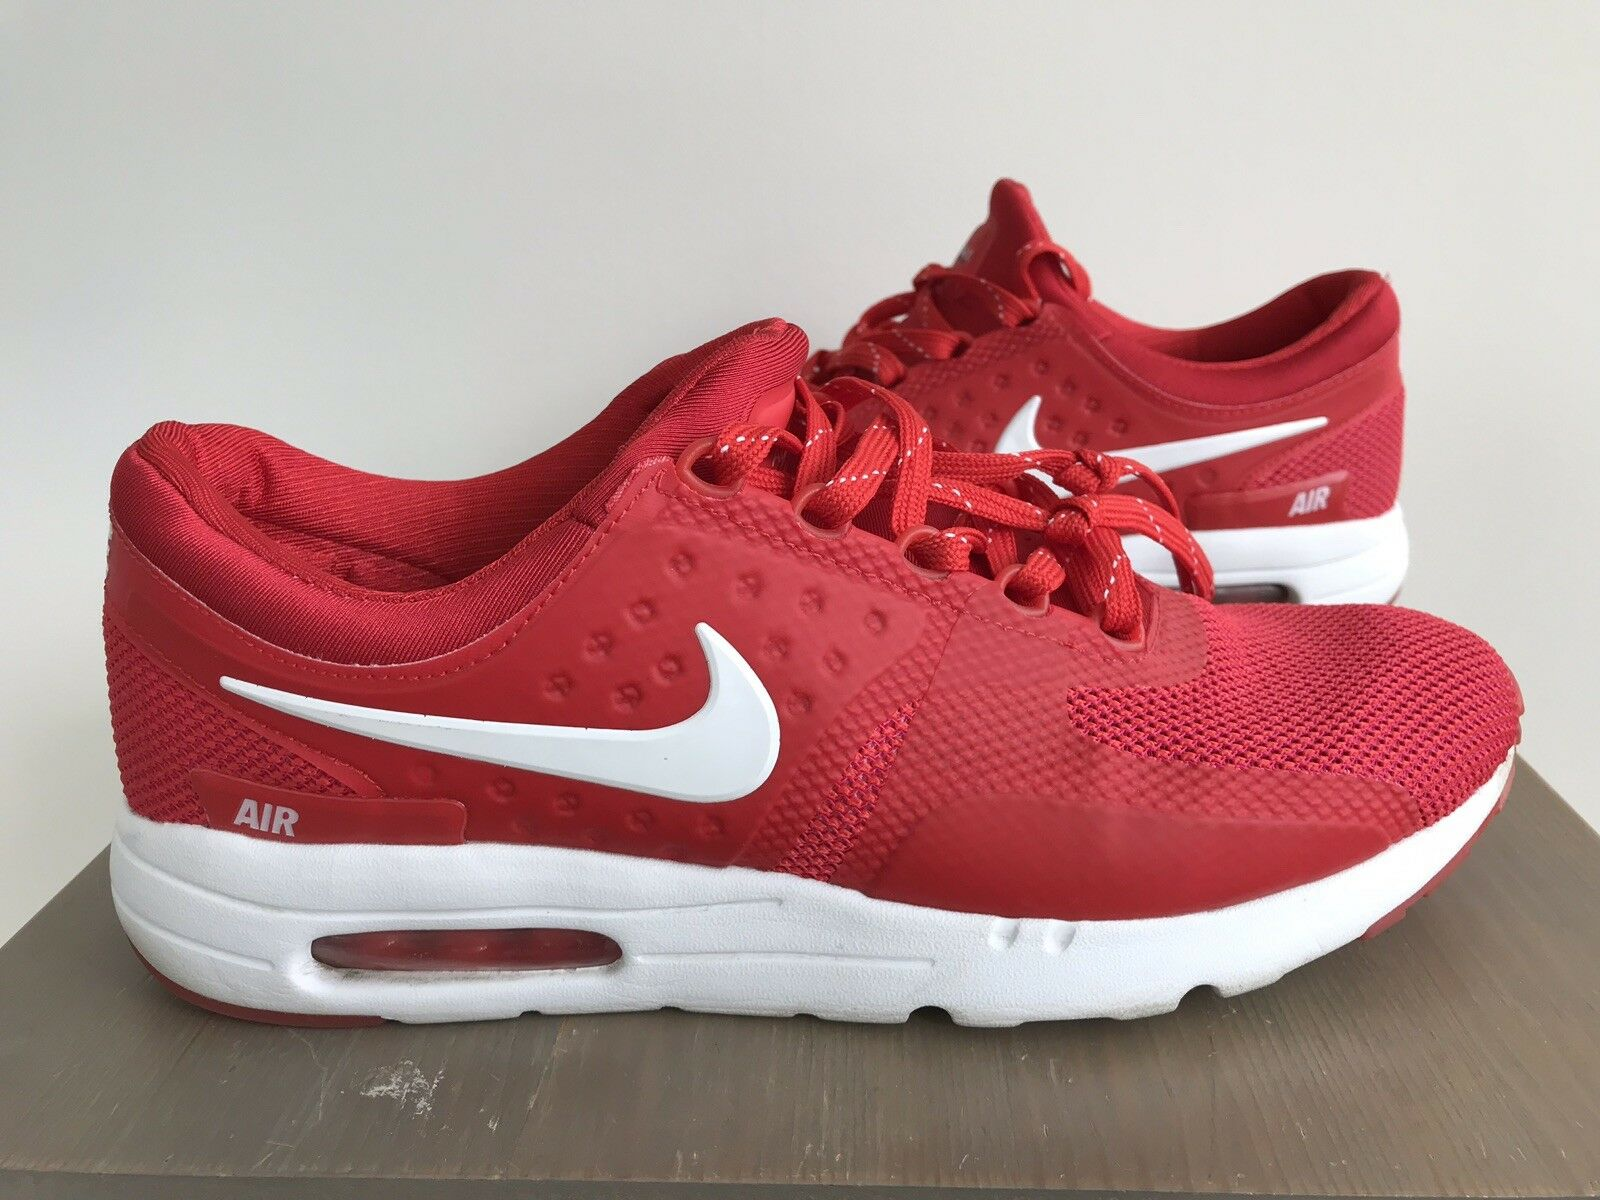 new styles 229fc 3d2c2 Nike Air Max Zero Chaussures Rouge Tinker Hatfield 789695-005 Homme Taille  12 0826 81207